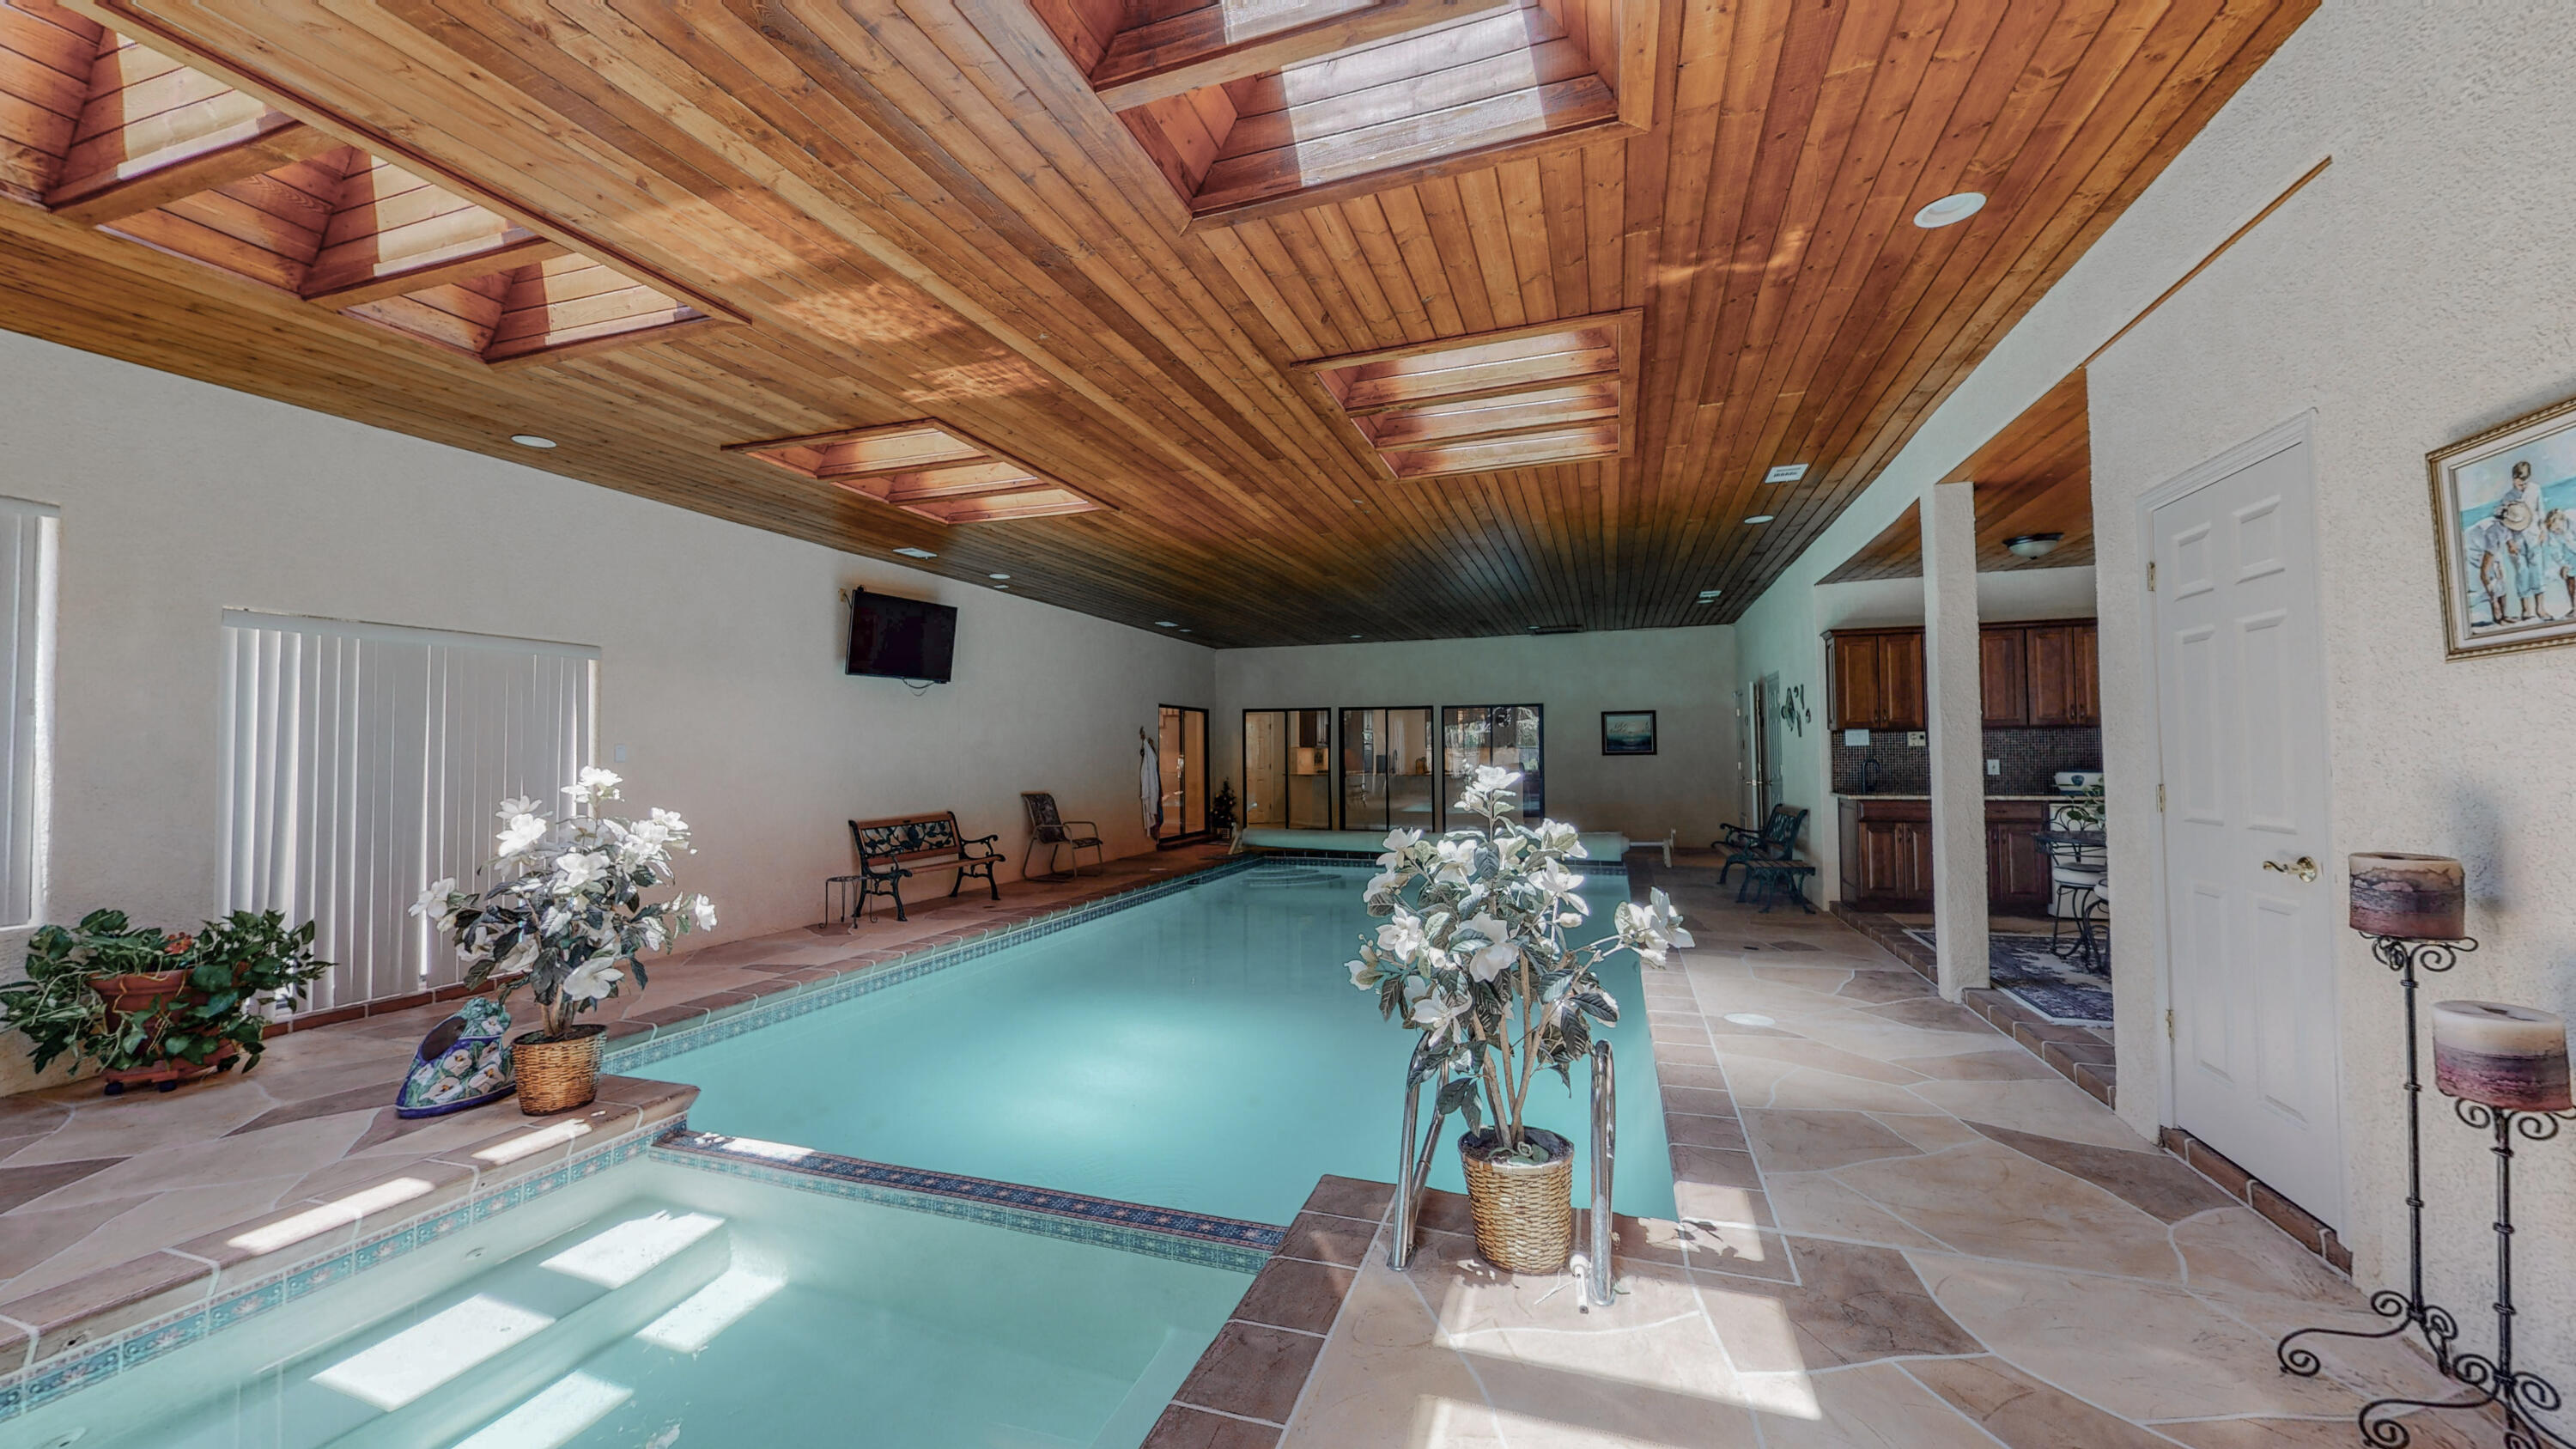 Impeccable 5-bed, 4-bath, 4-car garage home bursting with upgrades and amenities, from the enormous indoor pool and hot tub with changing room, bathroom, and wet bar with fridge, to the updated kitchen featuring a huge granite peninsula with solid wood, dovetailed, soft close cabinetry, chef-grade appliances, and full size pantry, to the large living room filled with natural light from the massive windows, complete with quartz fireplace hearth, to the spacious owner suite with private balcony looking over the city, while the jetted tub, steam shower, two large walk-ins, and double sinks round out the en-suite. Don't miss another deck with mountain views, TPO roof, recirculating hot water, hands-free faucets, LED and nightlight lighting, and so much more, nestled at the base of the Sandias.